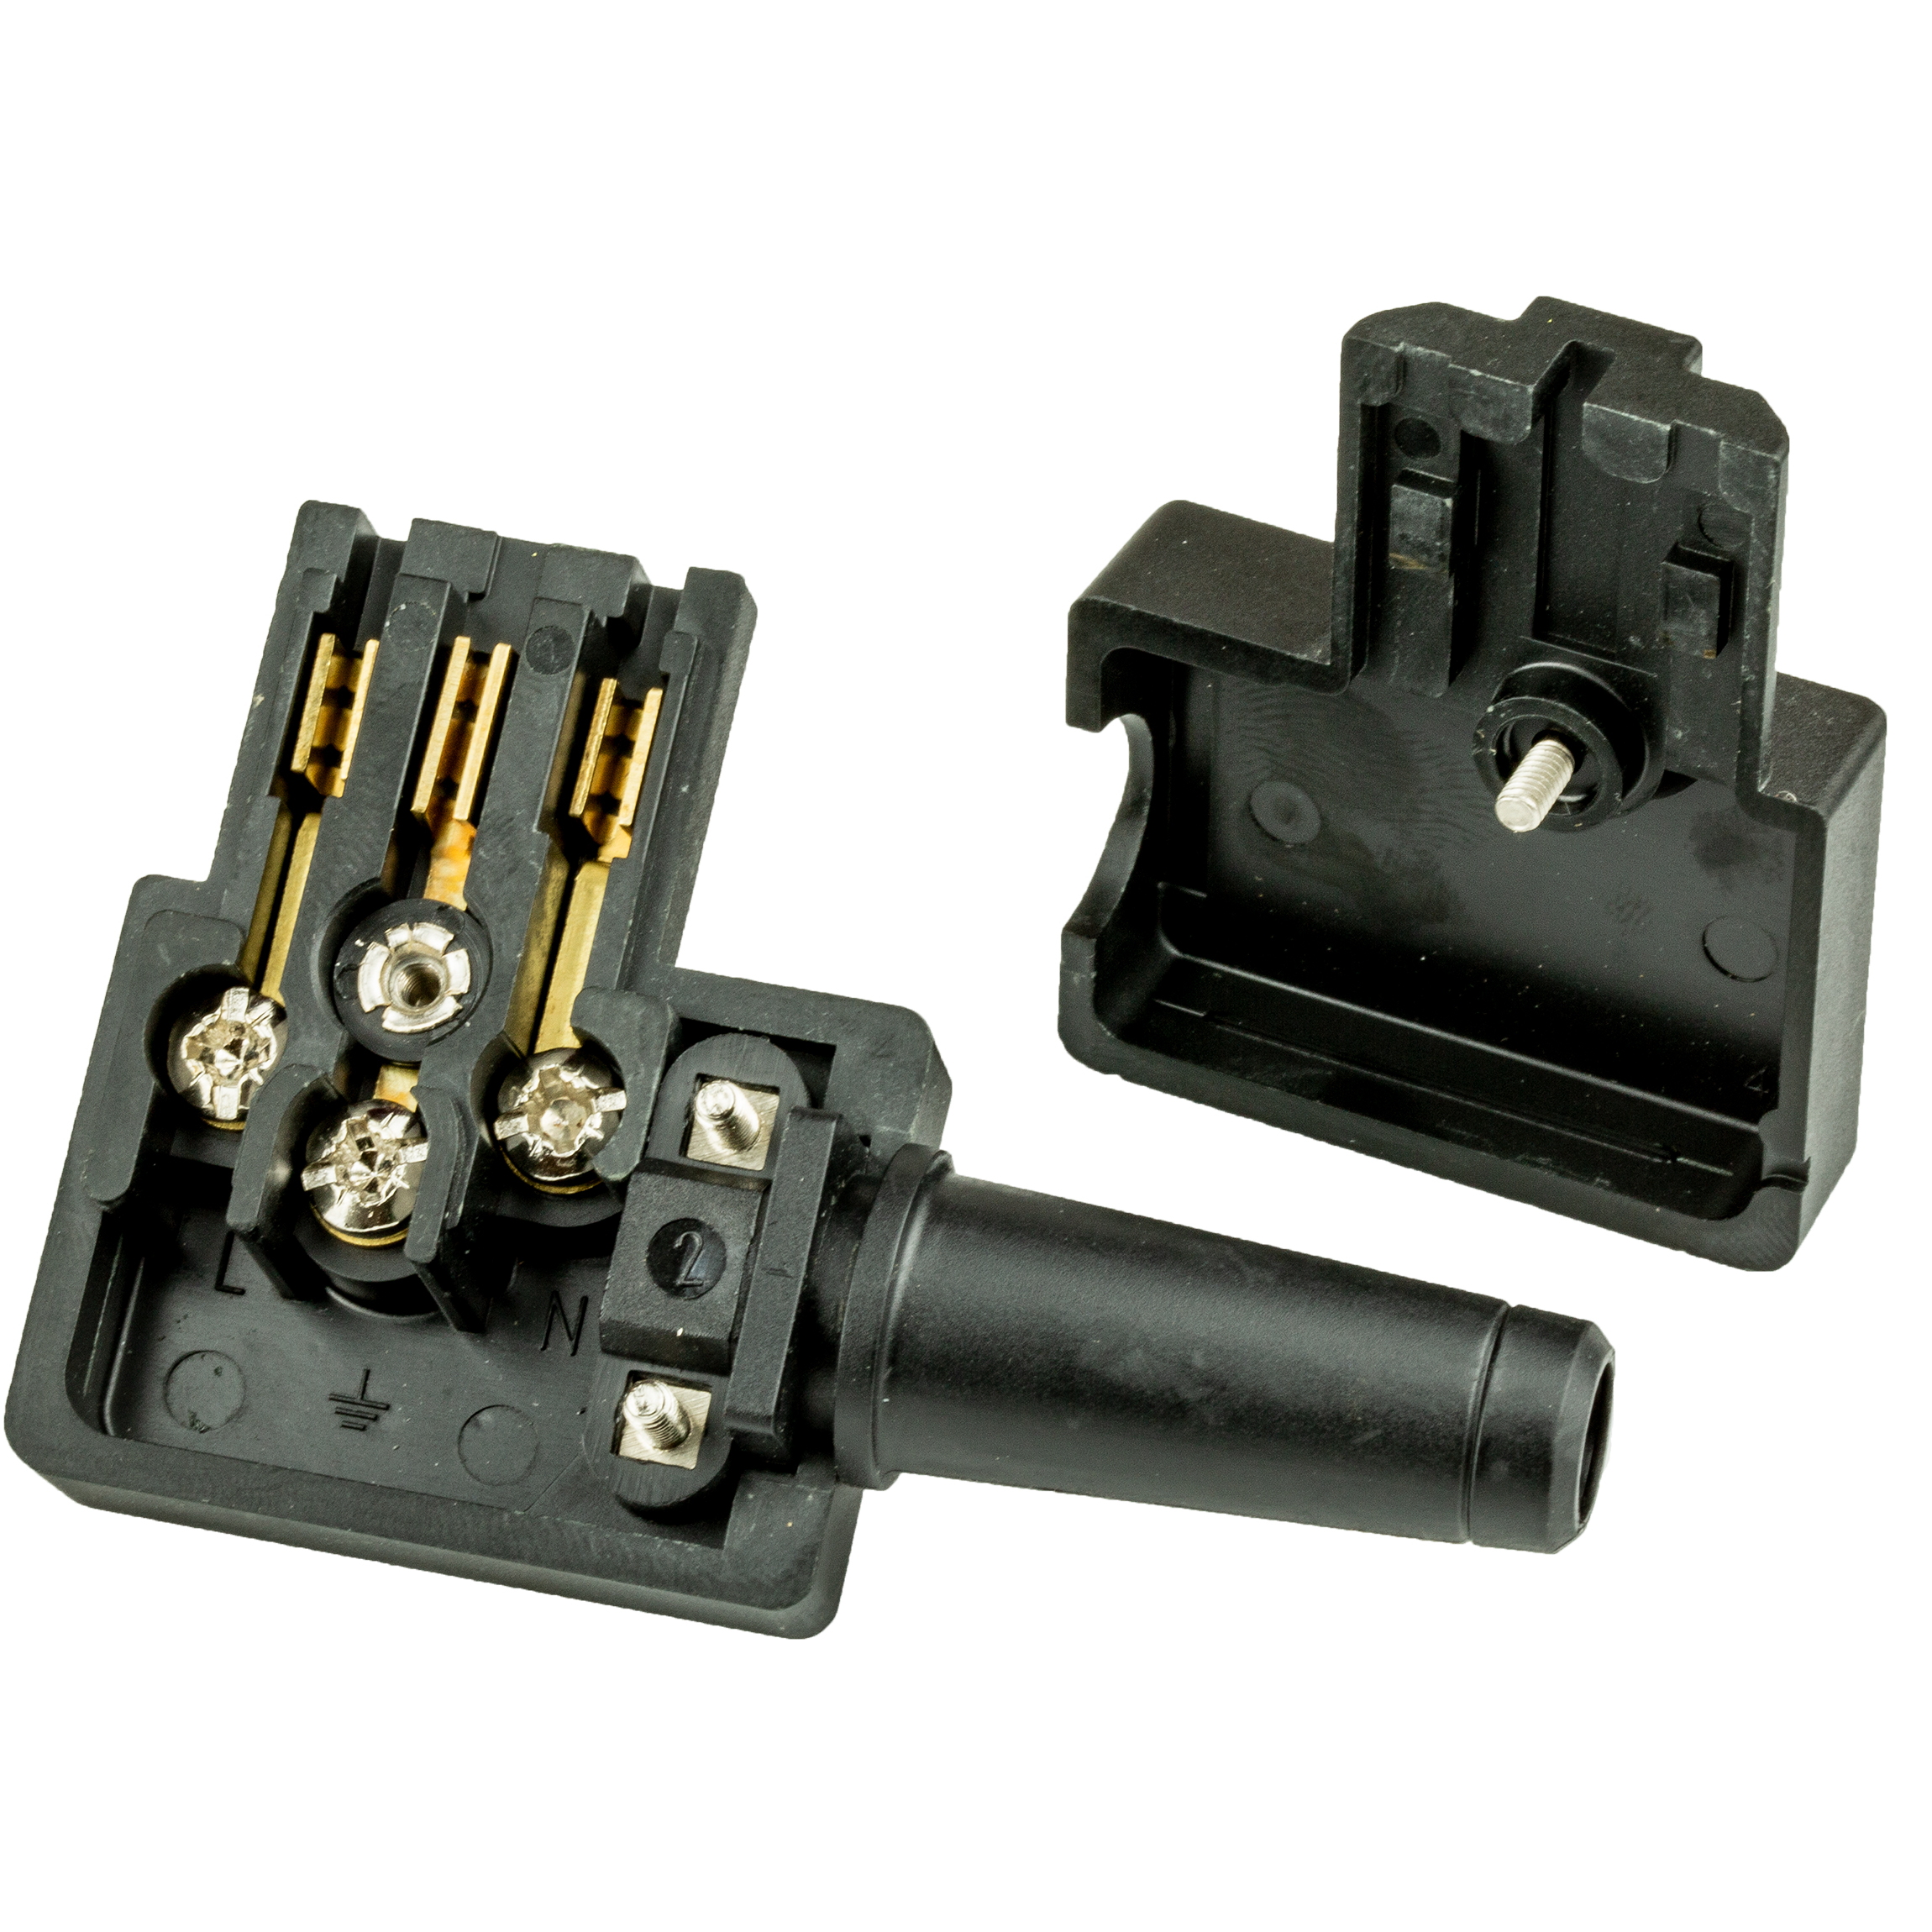 Rewireable C13 Connector